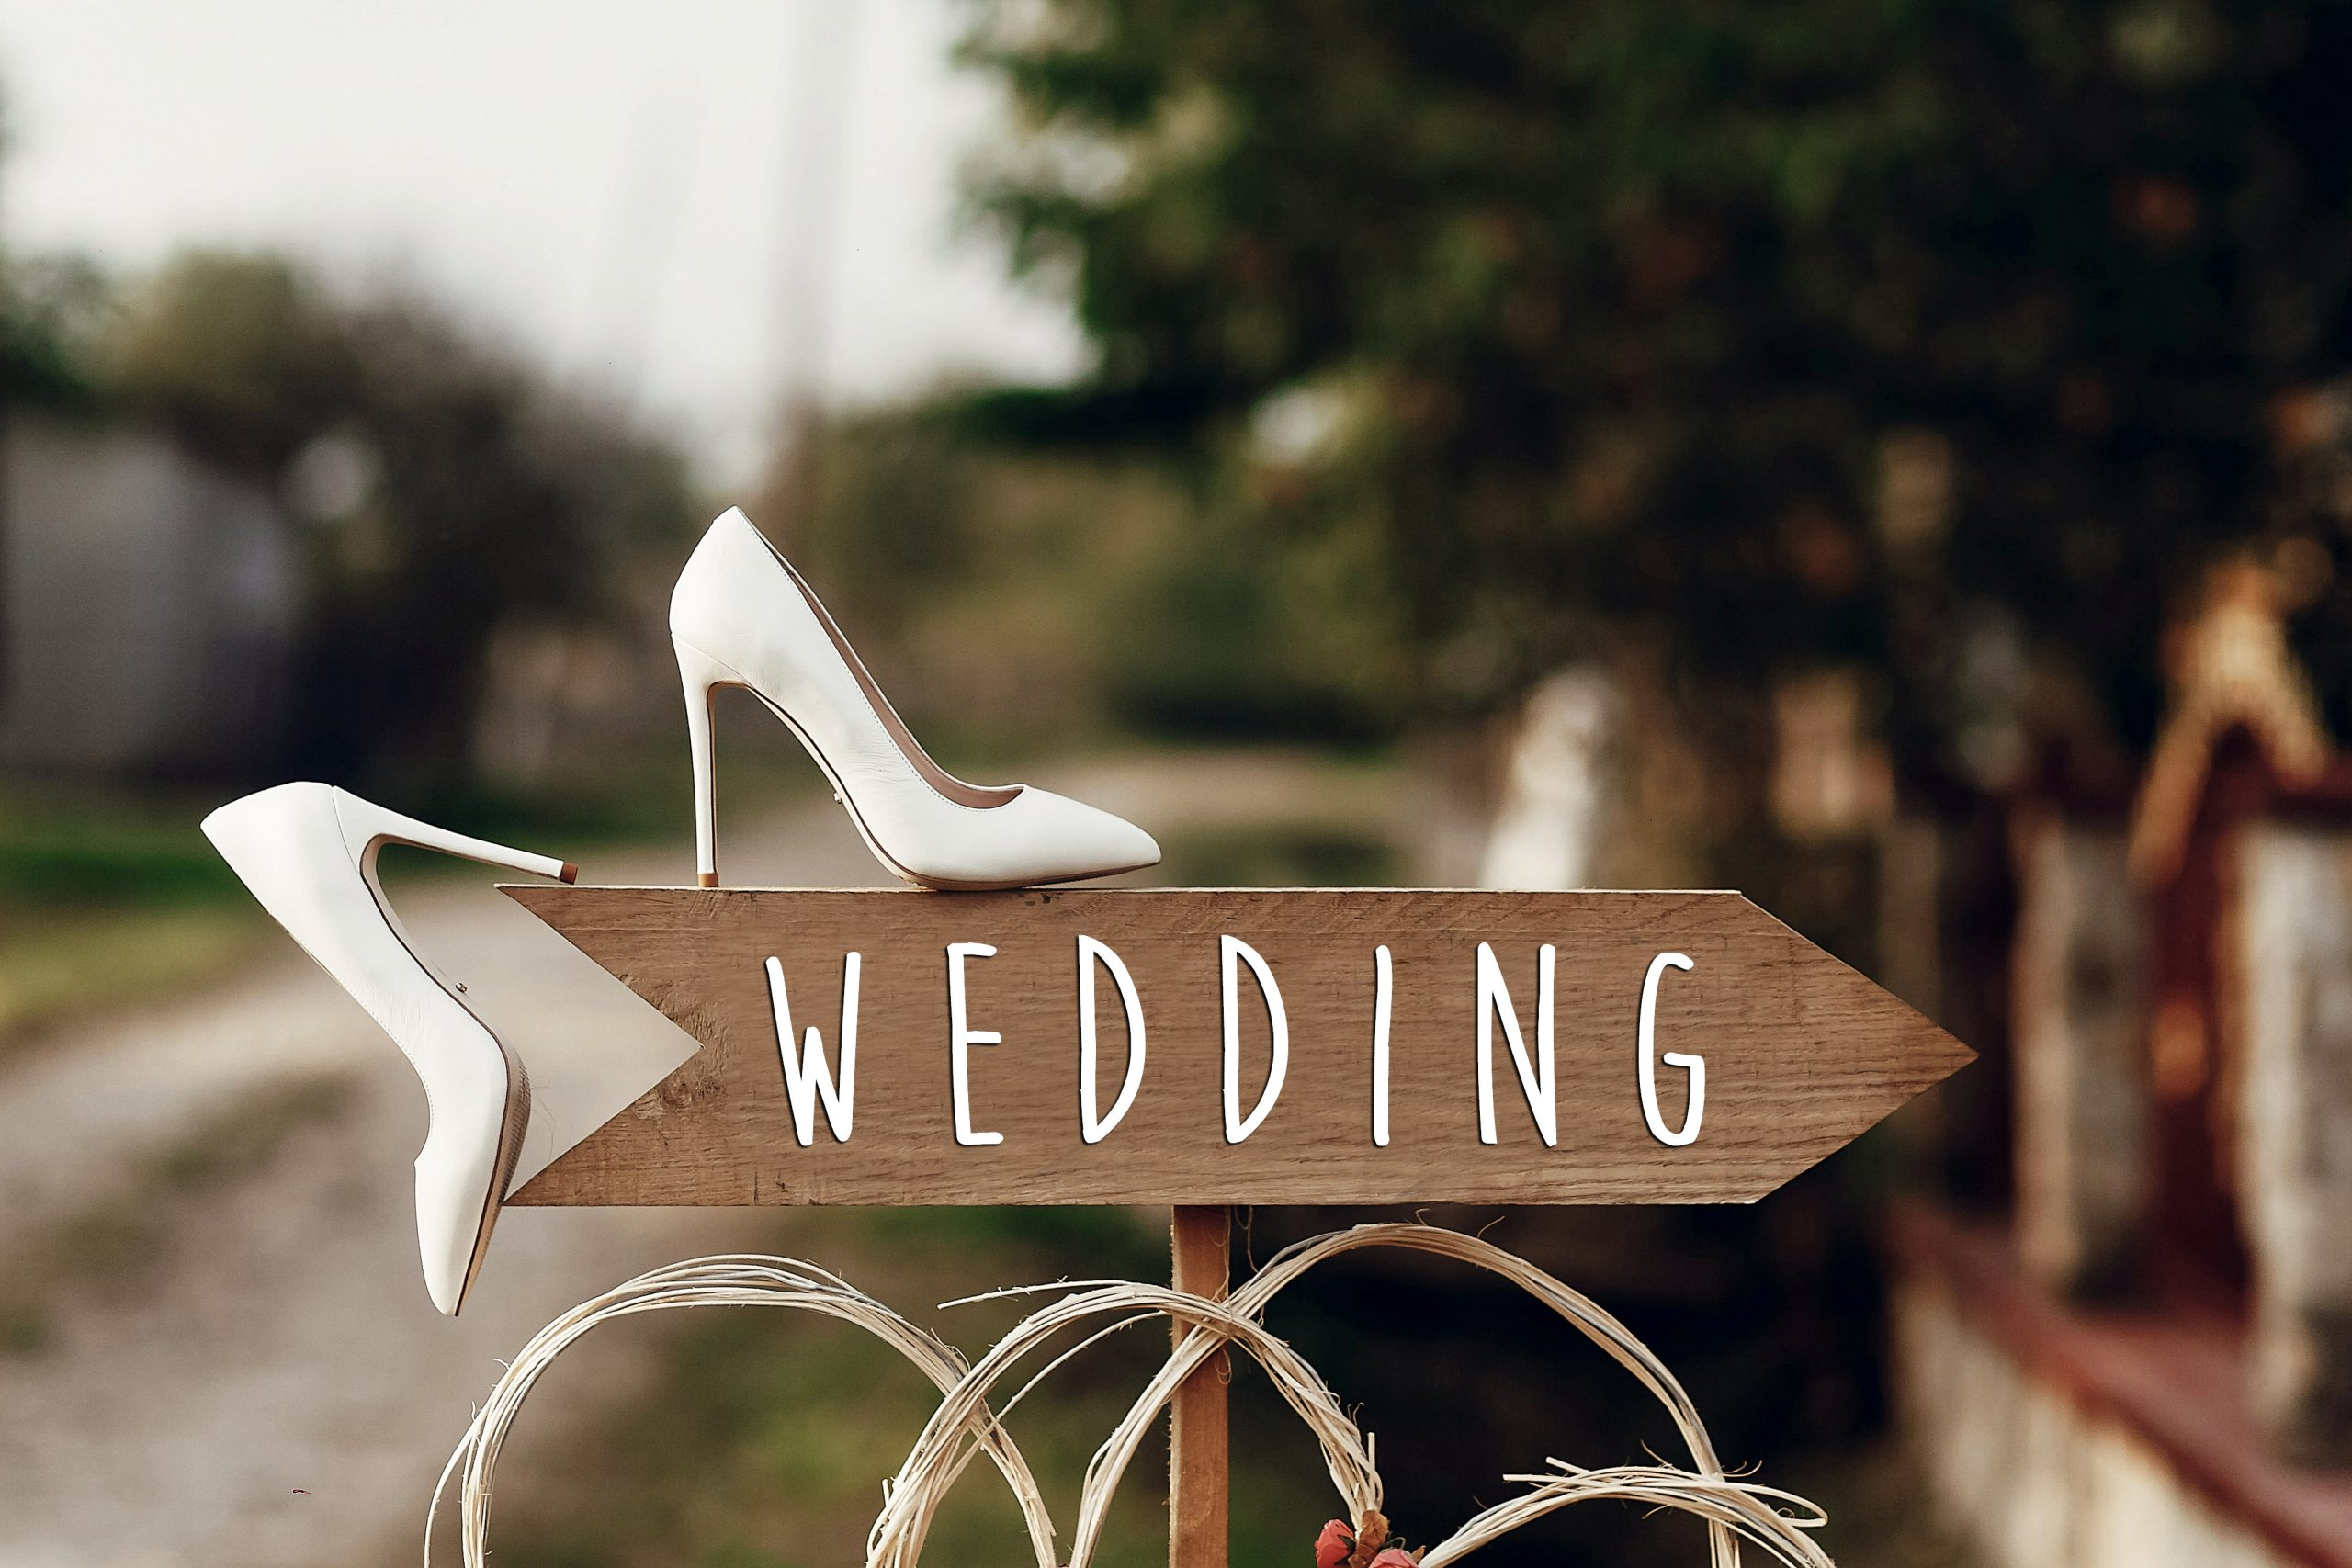 Small Vs Big Wedding: The Pros and Cons